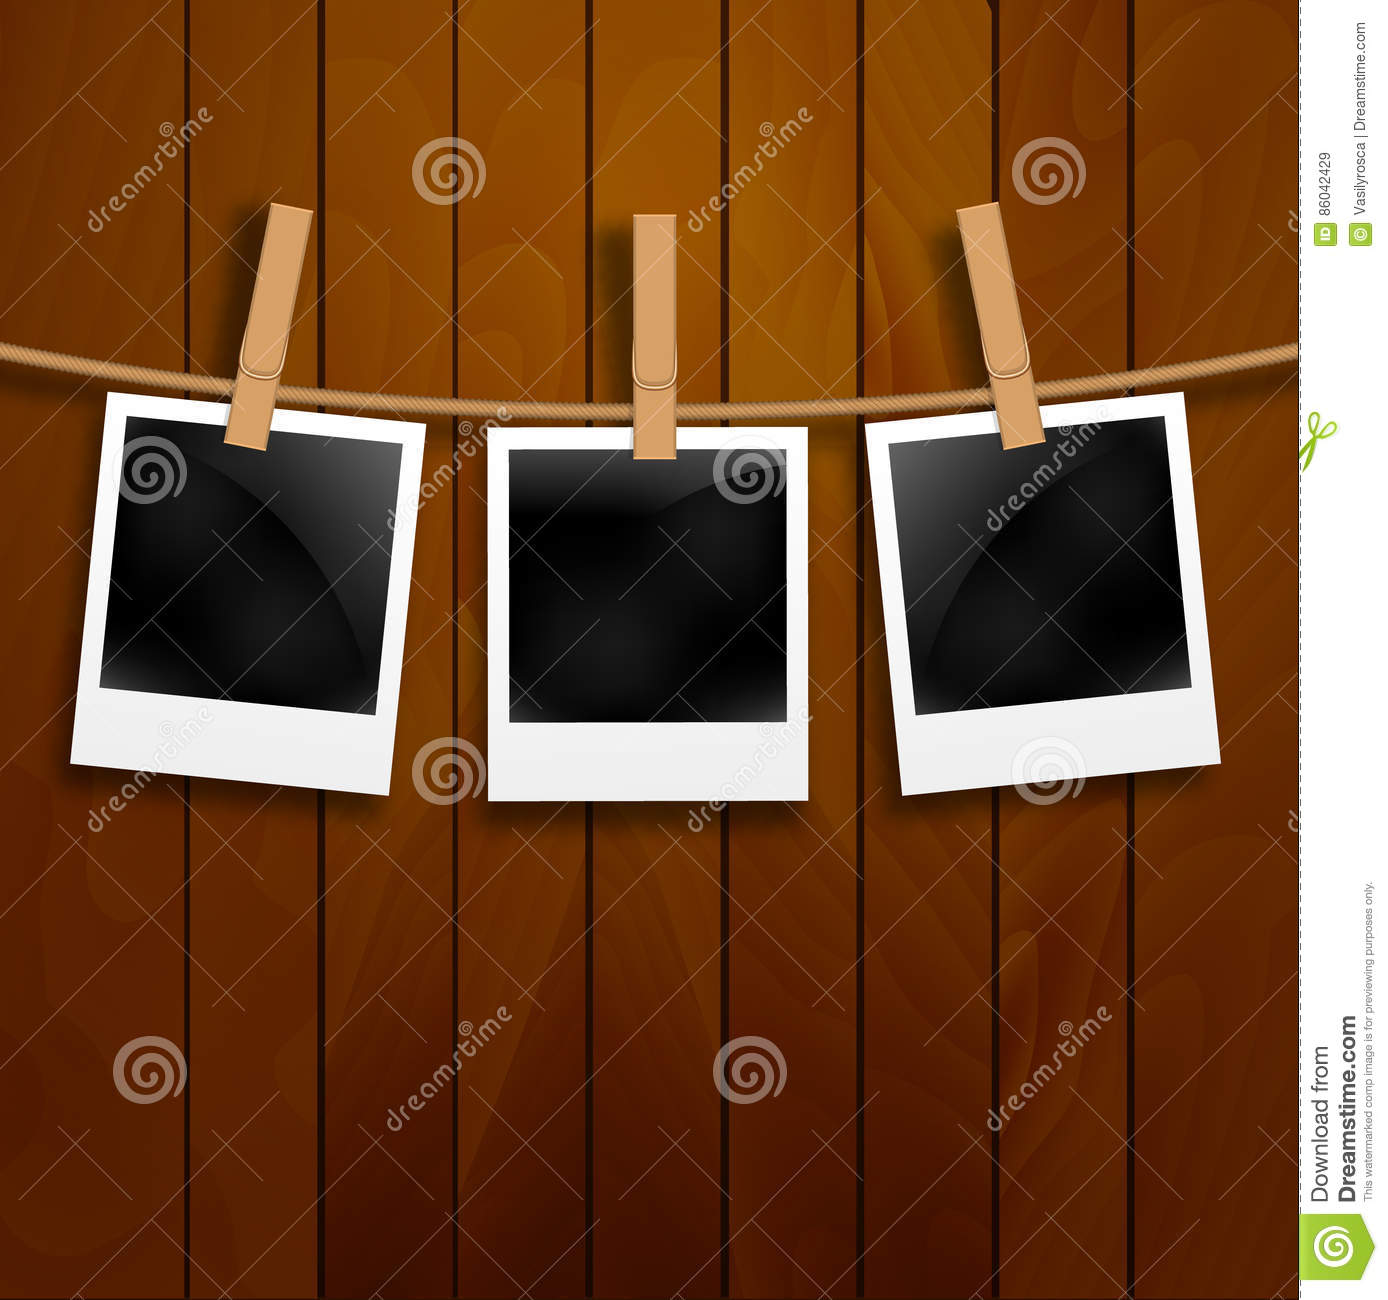 Wood frames set free vector - Royalty Free Vector Set Of Photo Frames On The Rope With Clothespin Polaroid Photo Frames Set On Wooden